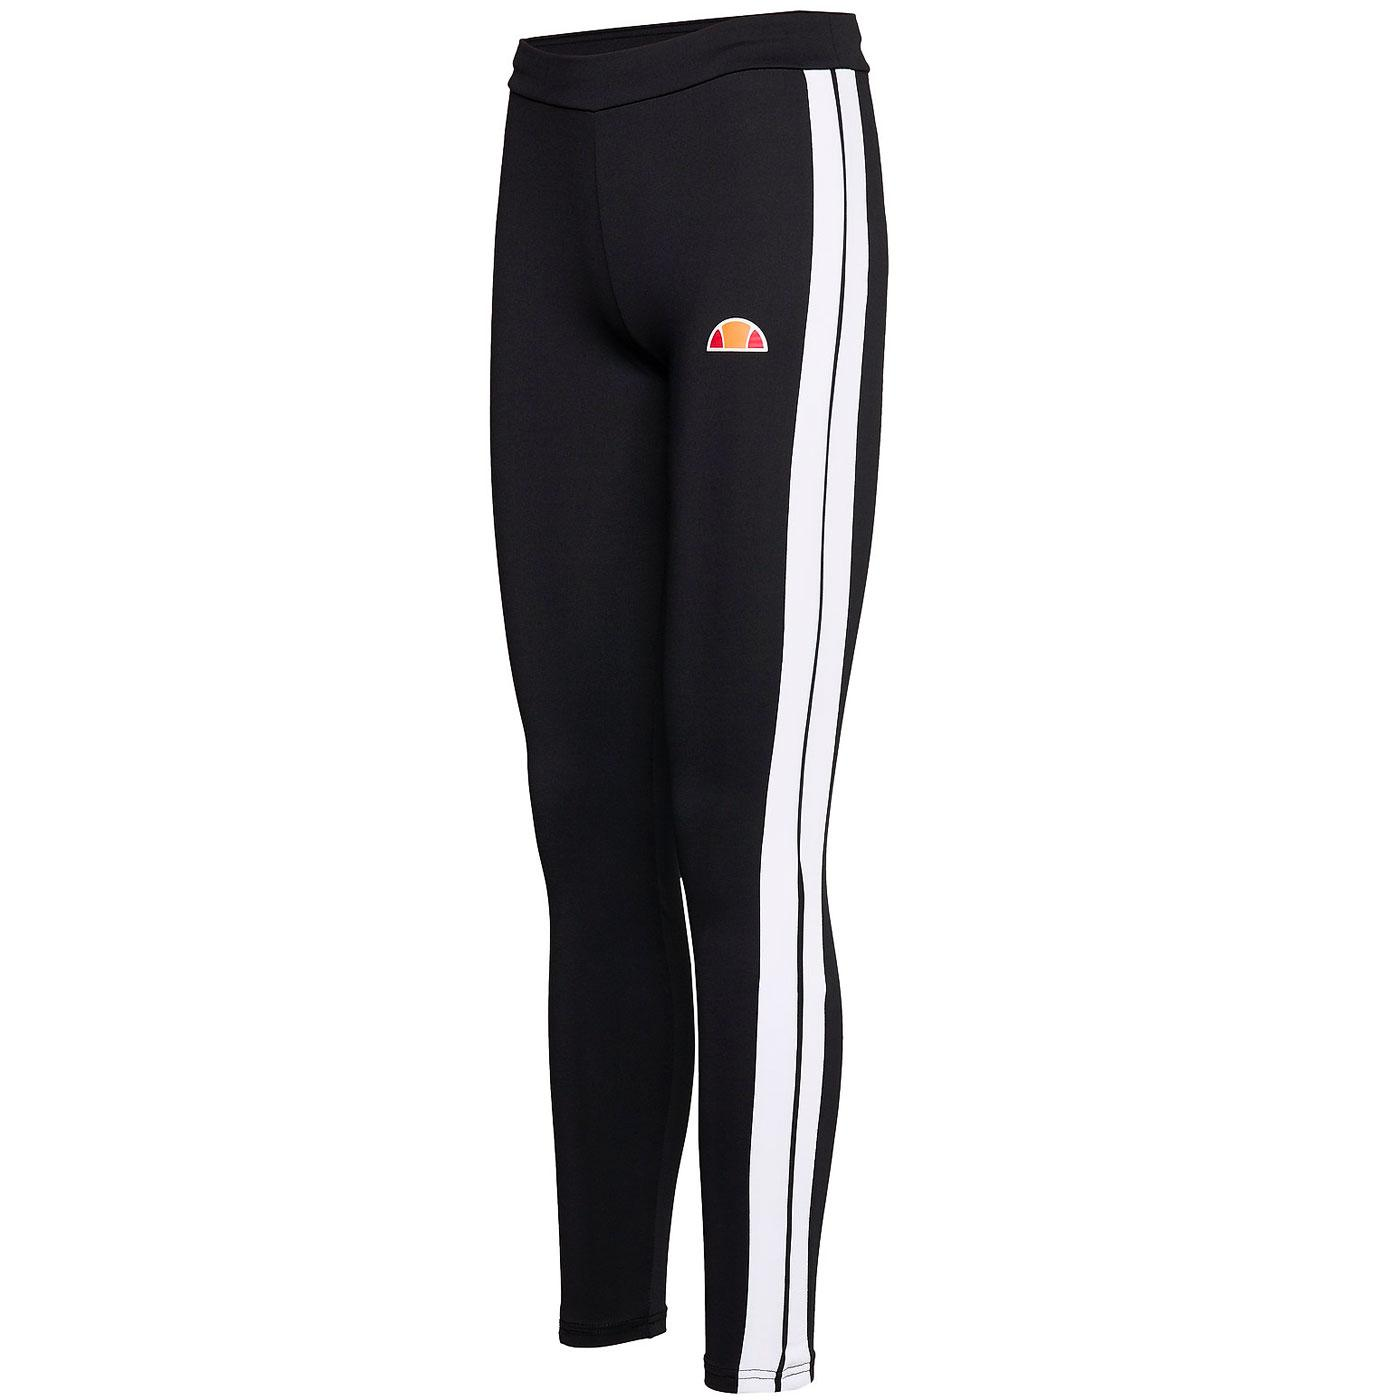 Perlita ELLESSE Retro 90s Side Stripe Leggings (B)